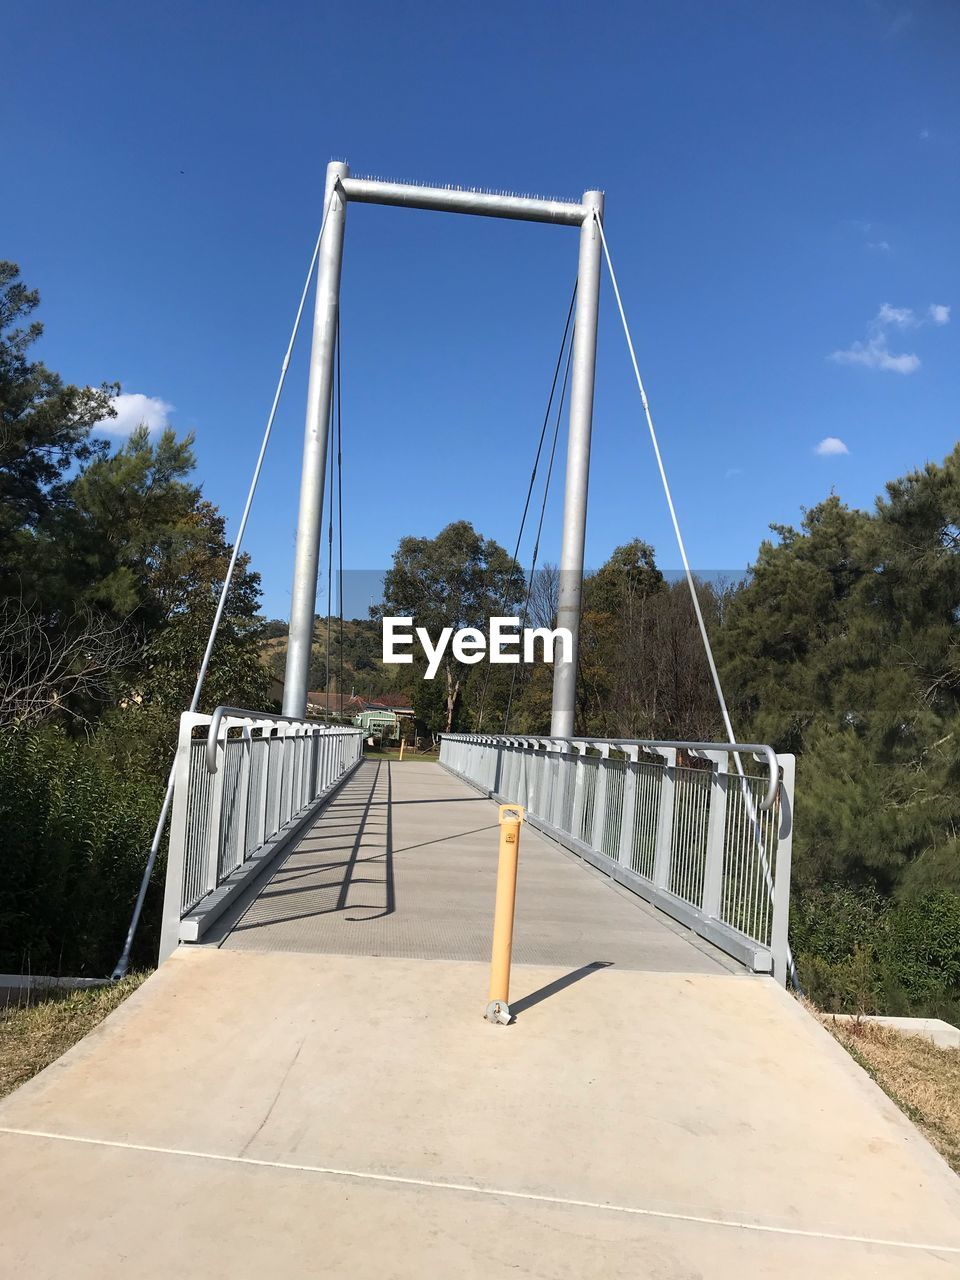 sky, tree, nature, plant, bridge, architecture, connection, day, no people, blue, bridge - man made structure, built structure, sunlight, outdoors, transportation, clear sky, the way forward, playground, metal, direction